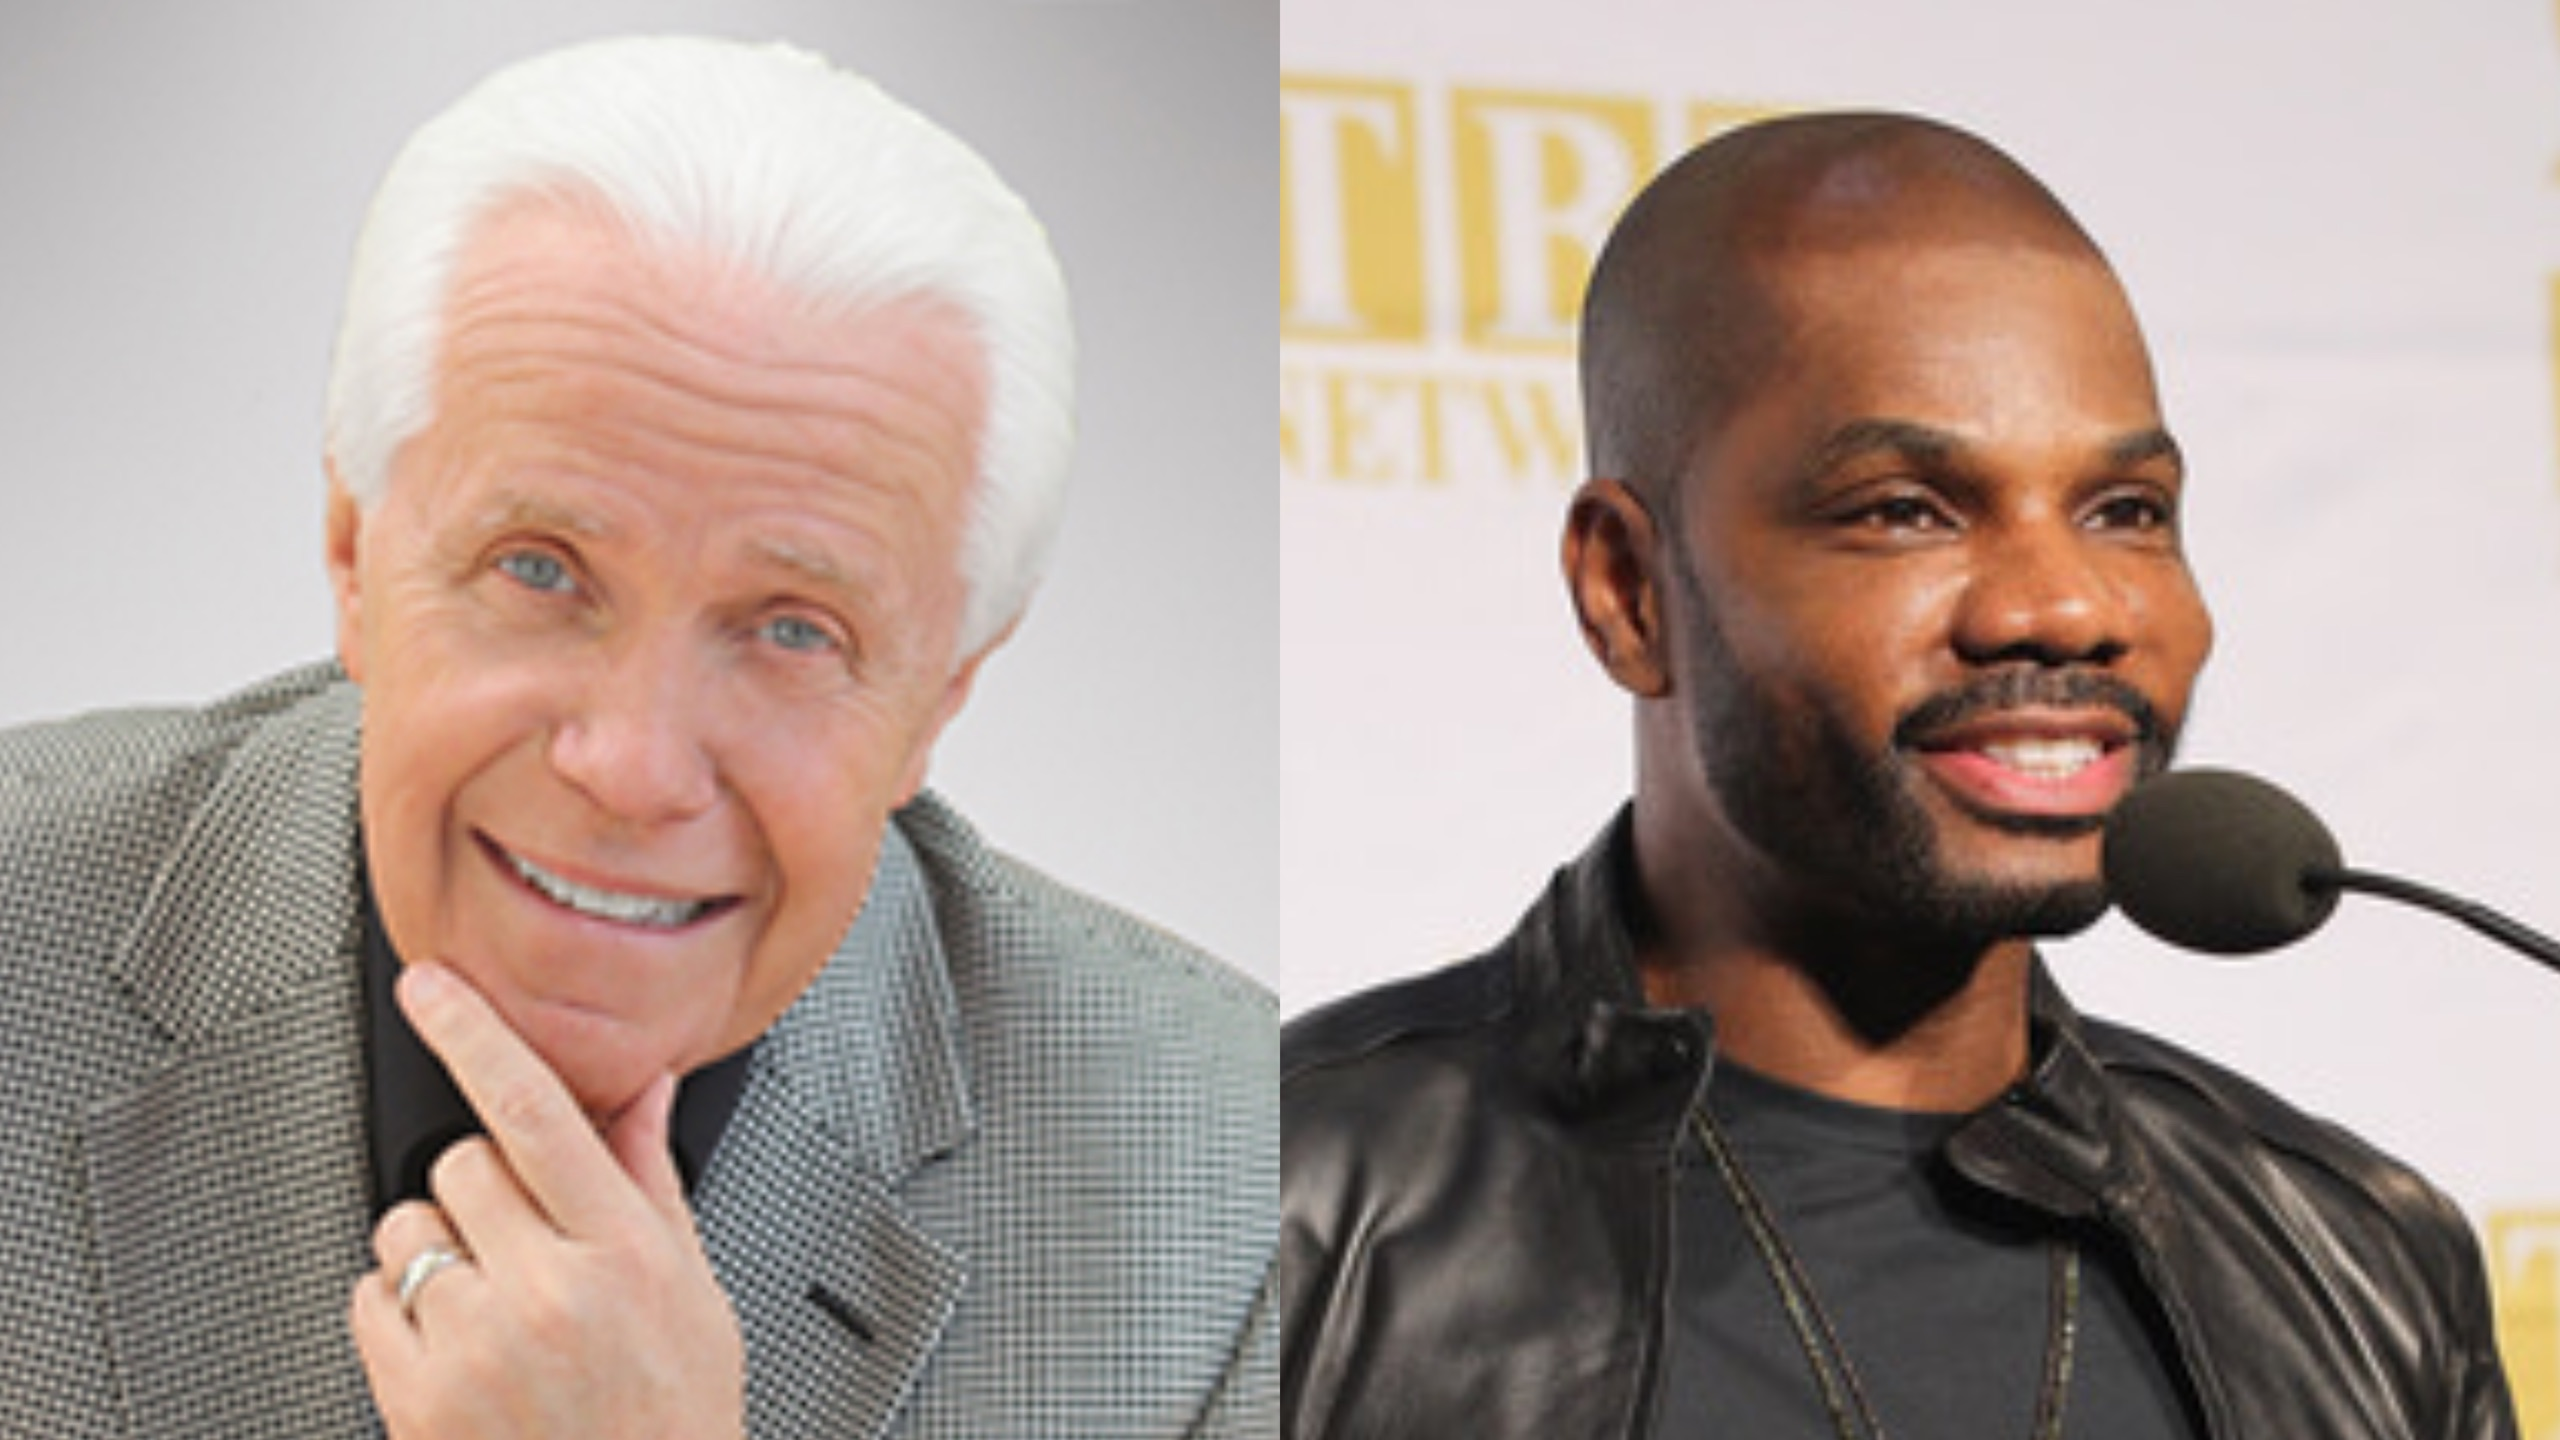 Jesse Duplantis requests 'Well Wishers' his Congregation to Purchase another Private Plane and Kirk Franklin Calls him out.